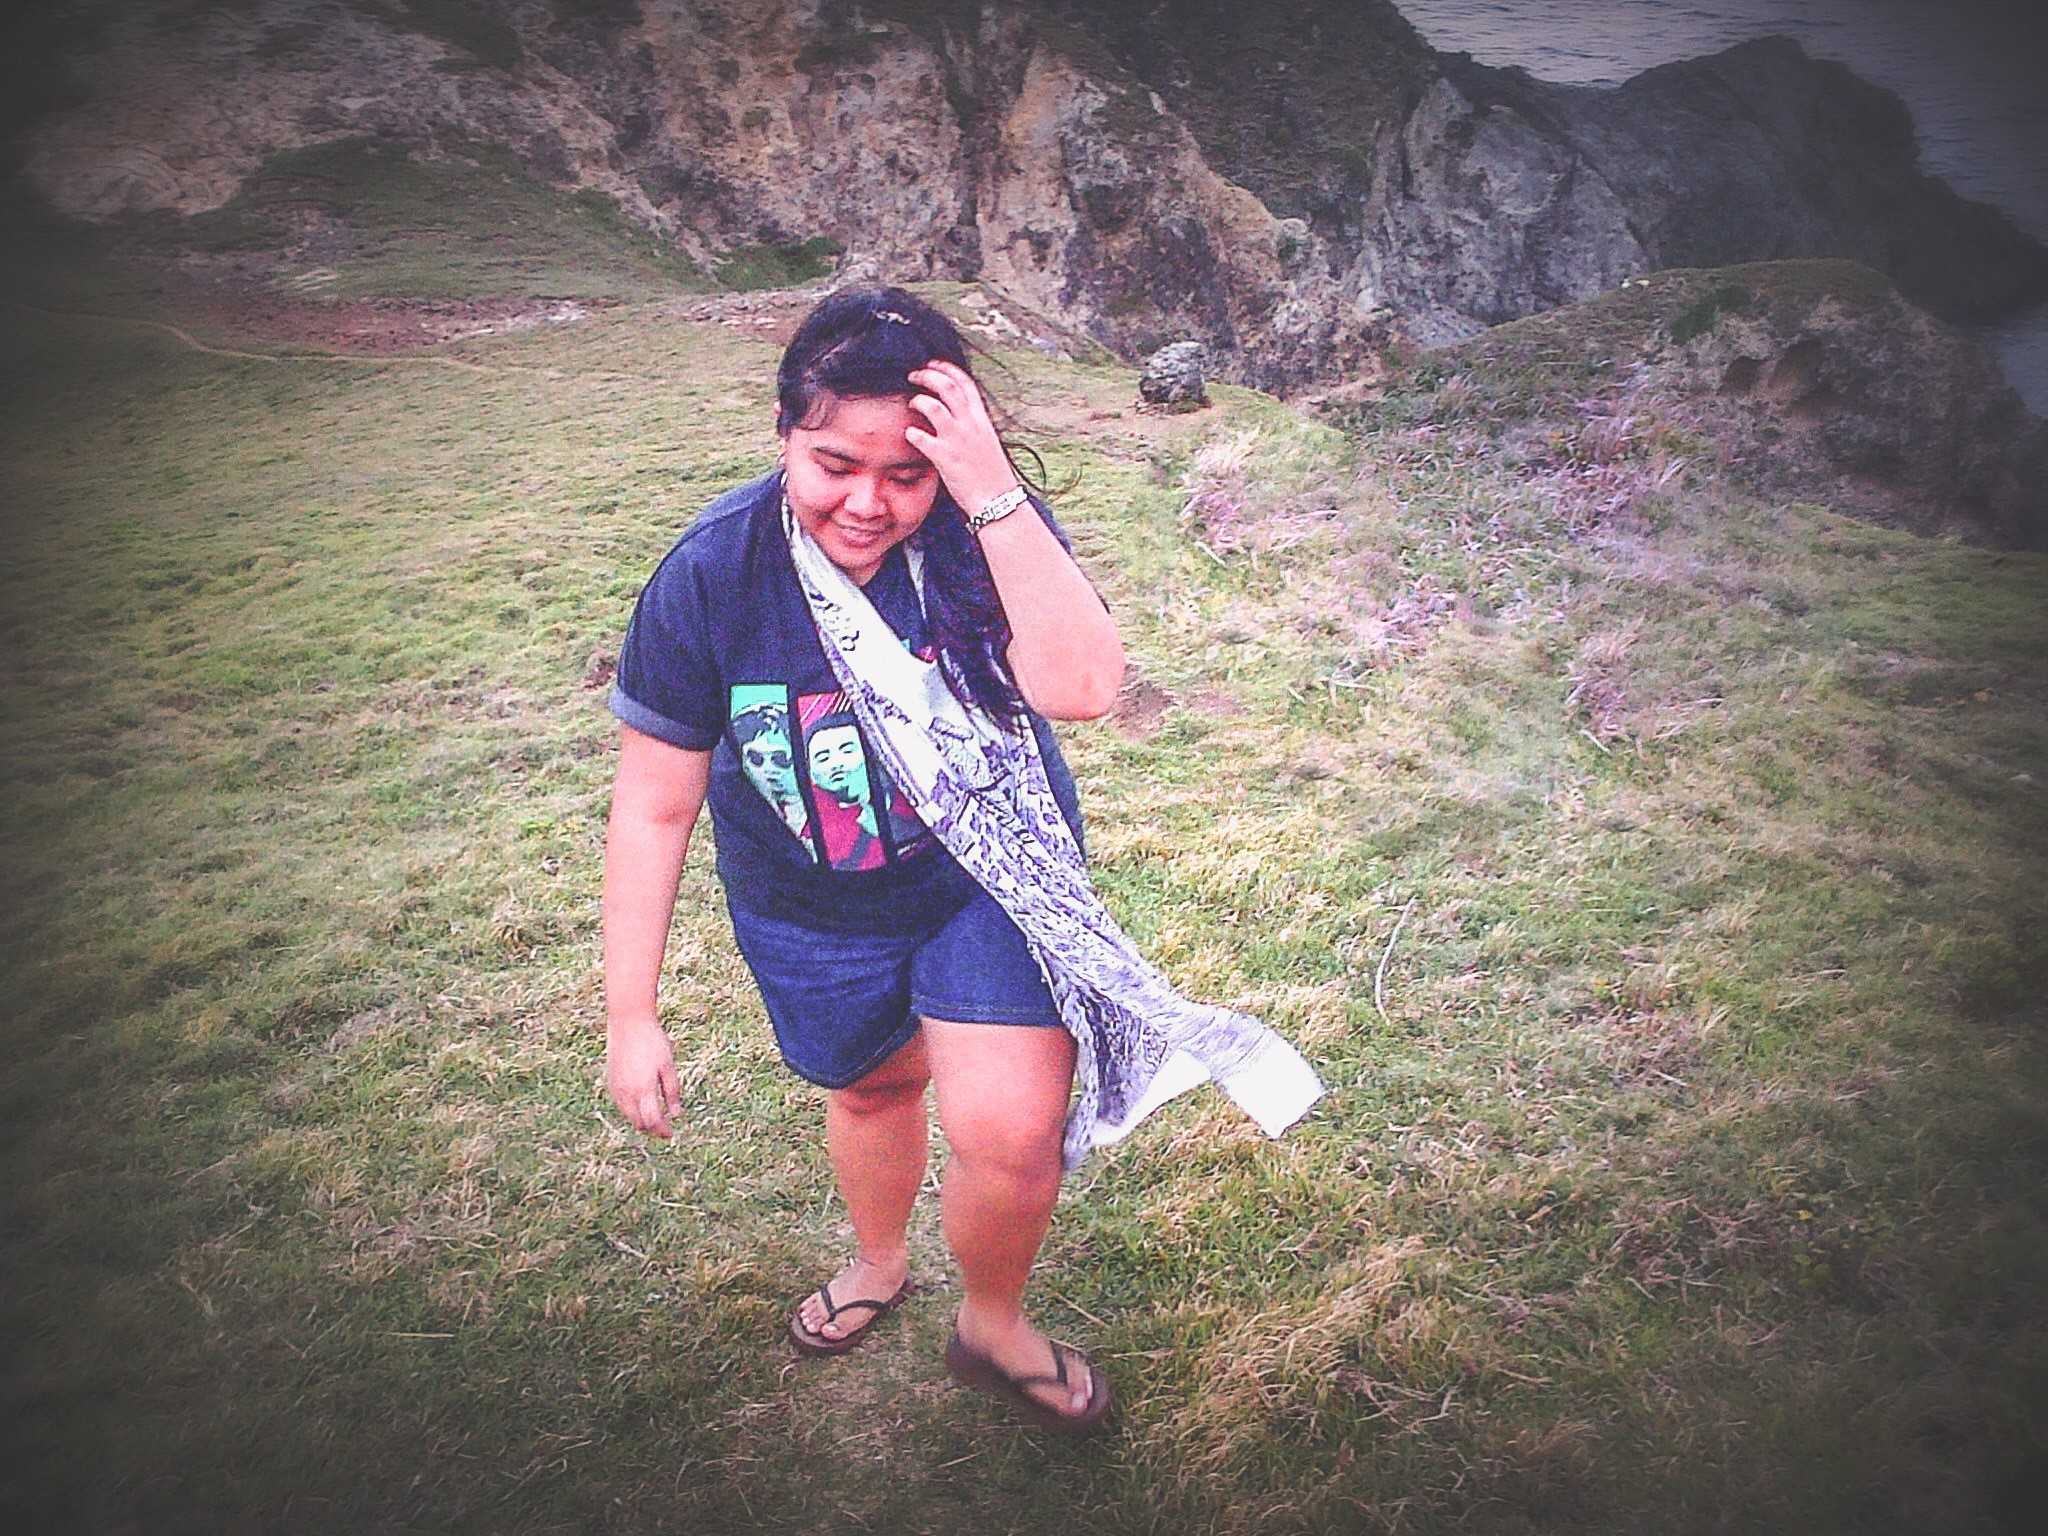 Gave my camera to one of the kids in Batanes and he captured this photo of me (2013)